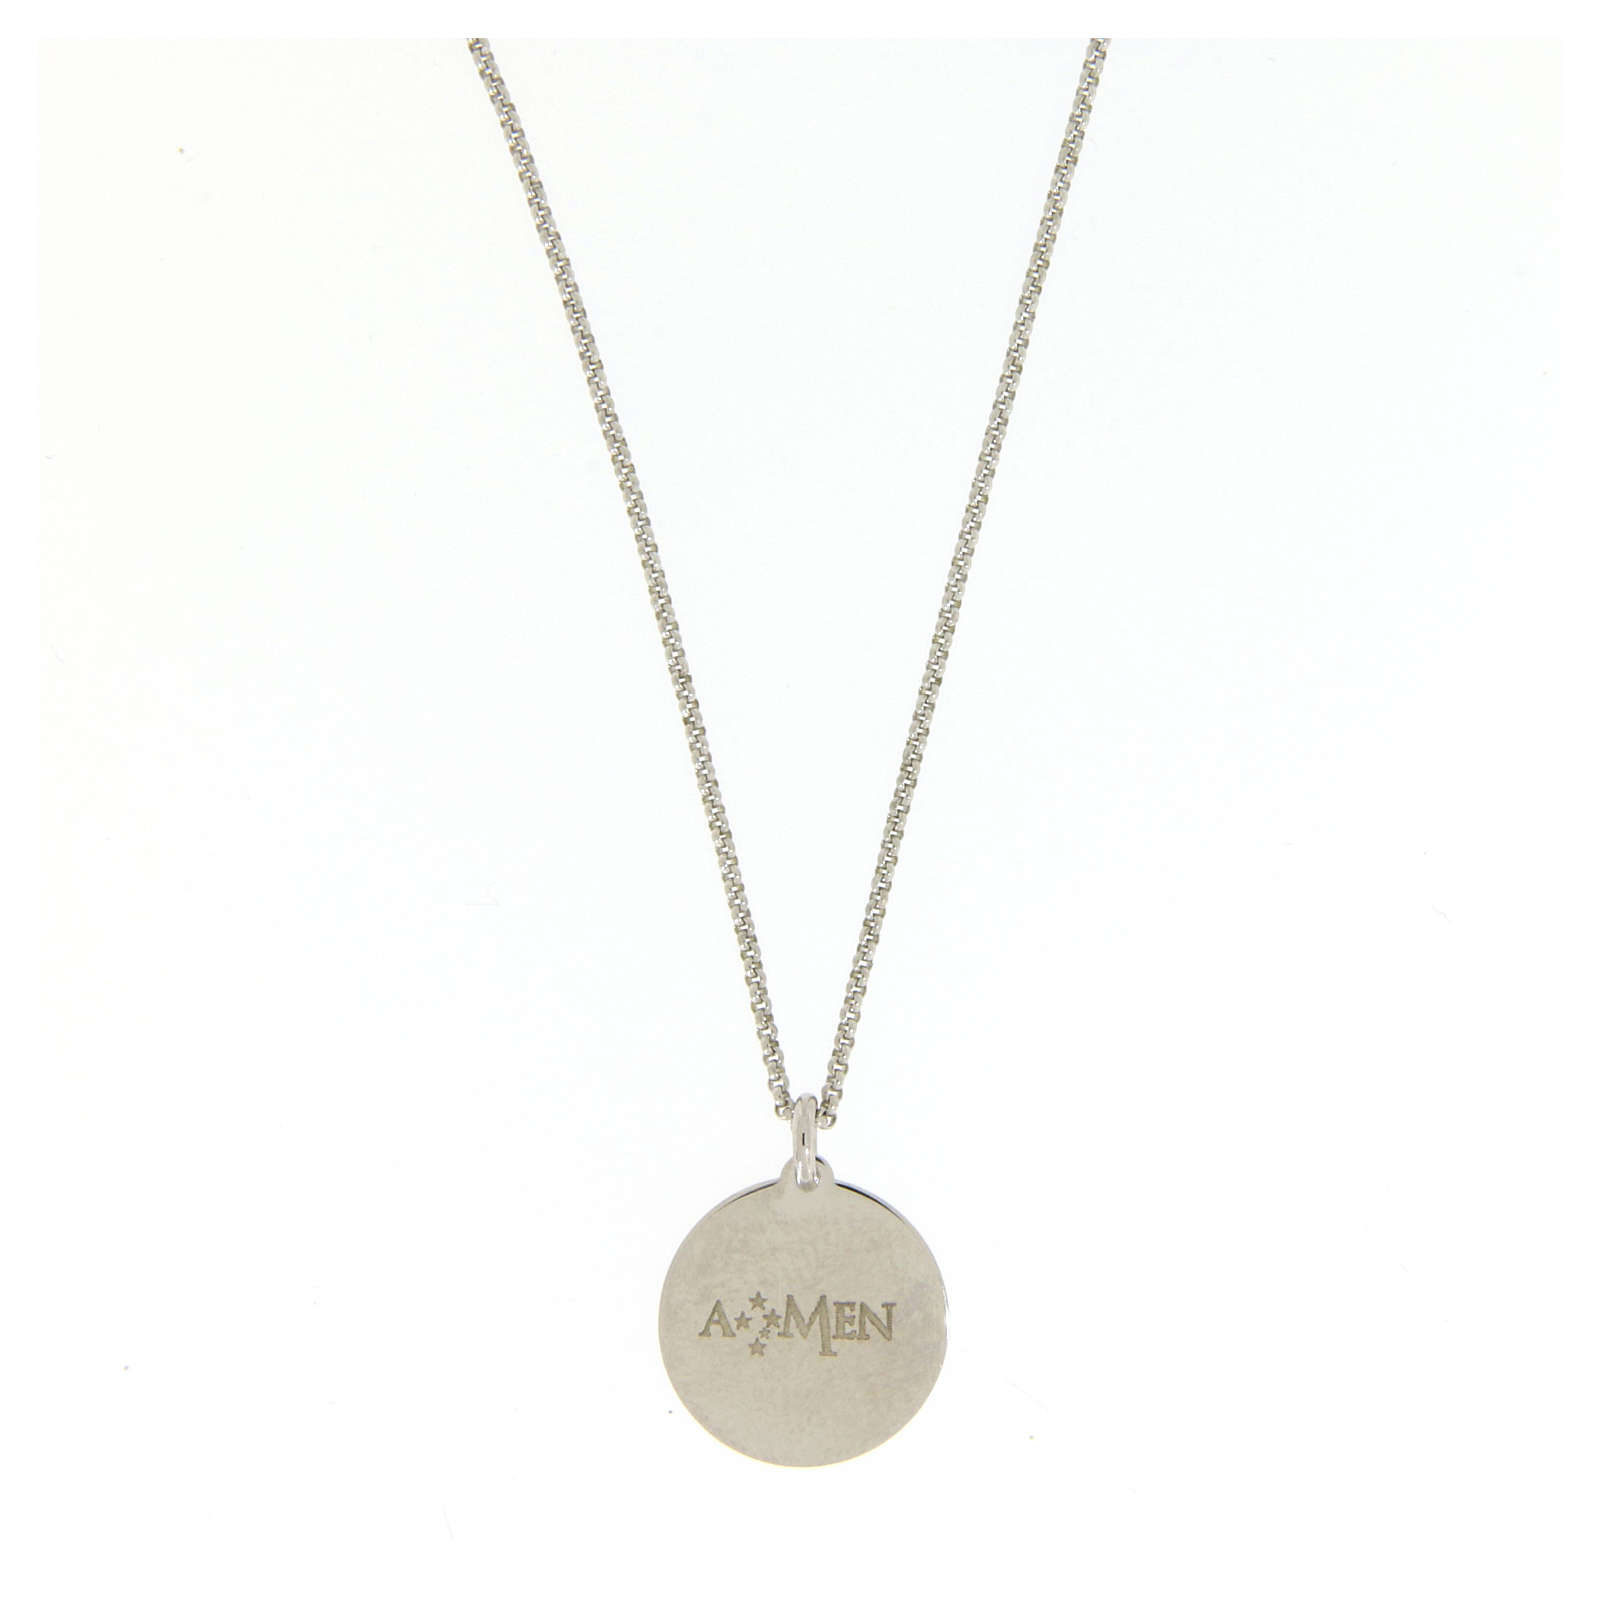 Amen necklace choker for men with Hail Mary prayer in latin in 925 sterling silver 4